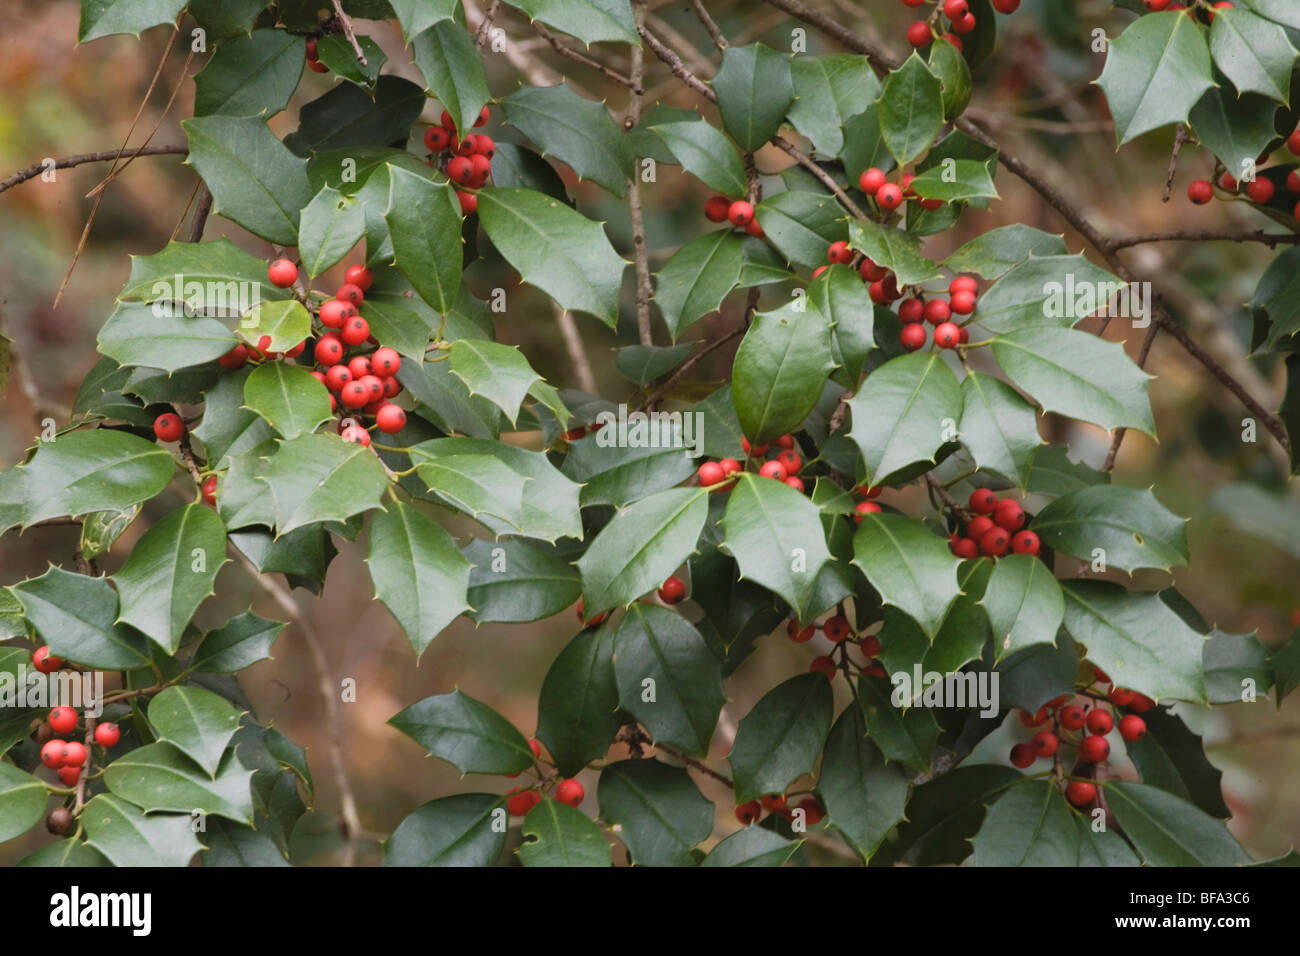 Bushes To Plant In The Fall